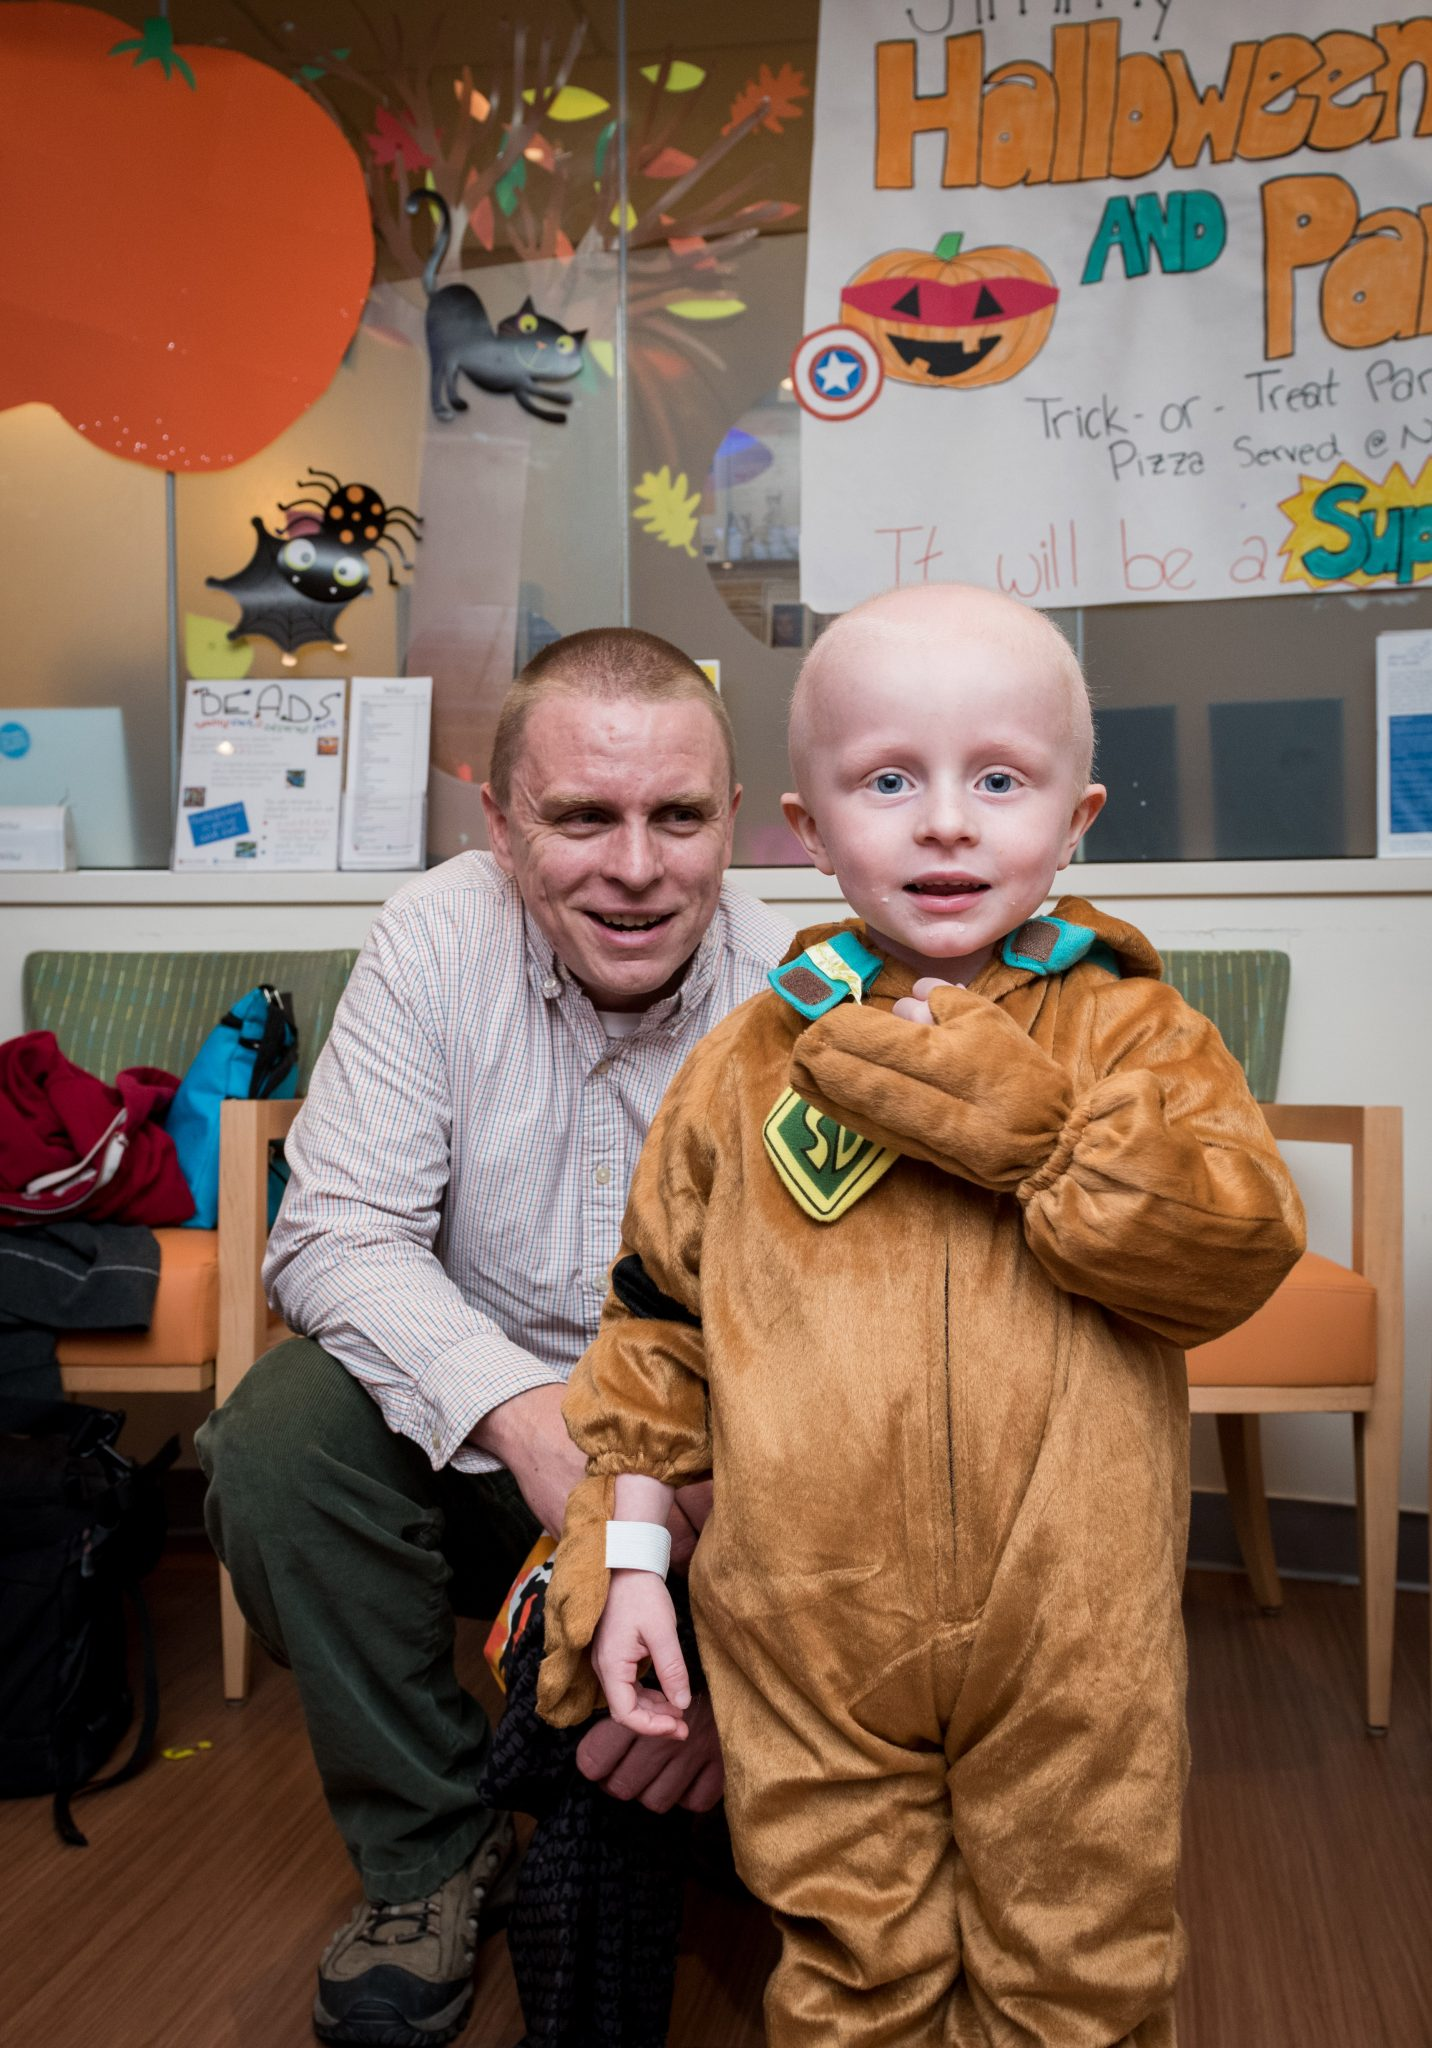 Dressed as Scooby-Doo, Jimmy Fund Clinic patient Joey is all smiles.